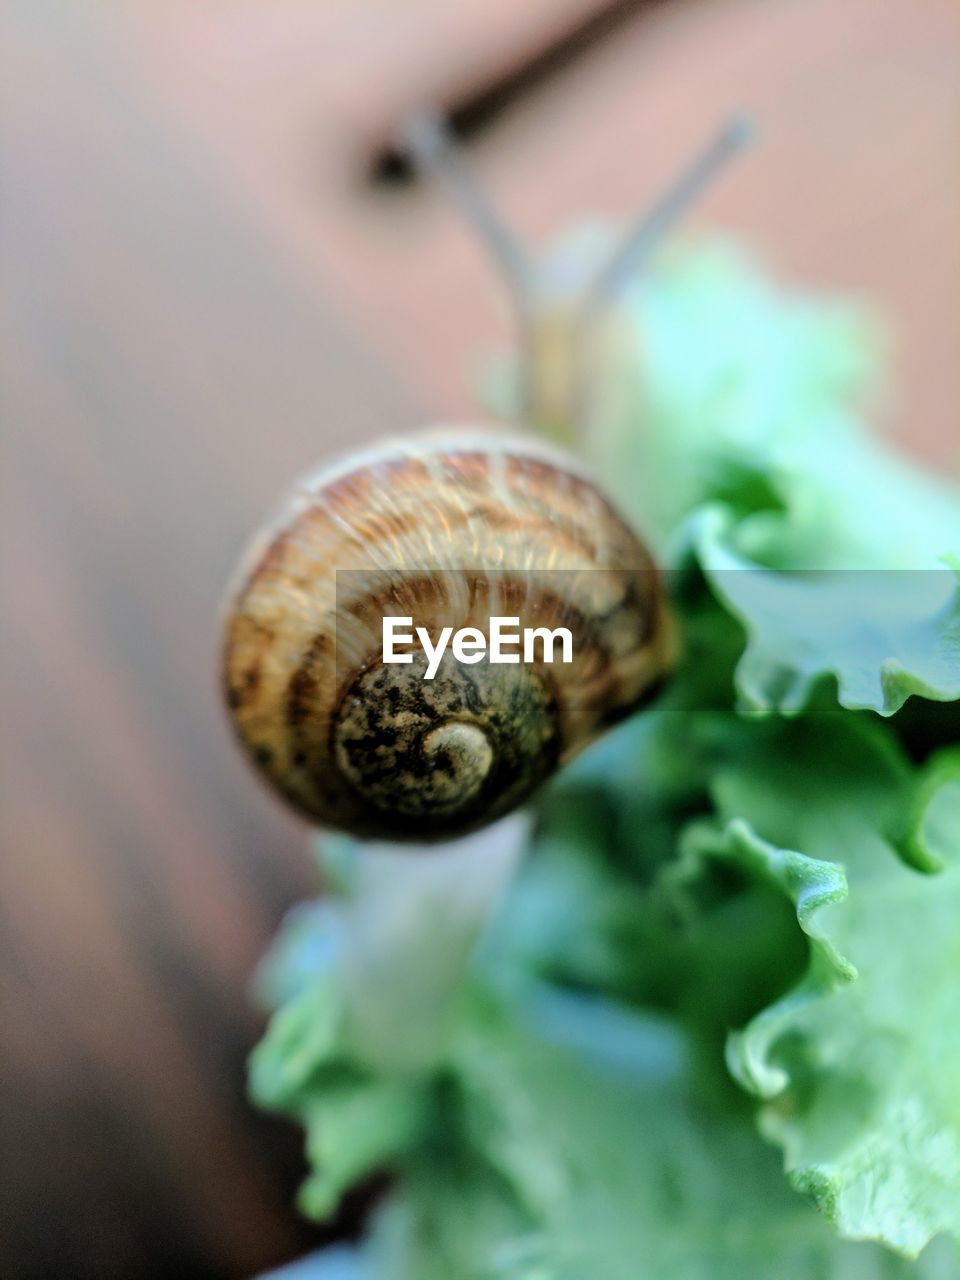 shell, animal wildlife, close-up, animal, animal shell, mollusk, gastropod, selective focus, snail, invertebrate, animal themes, no people, nature, spiral, beauty in nature, one animal, animals in the wild, day, plant, focus on foreground, outdoors